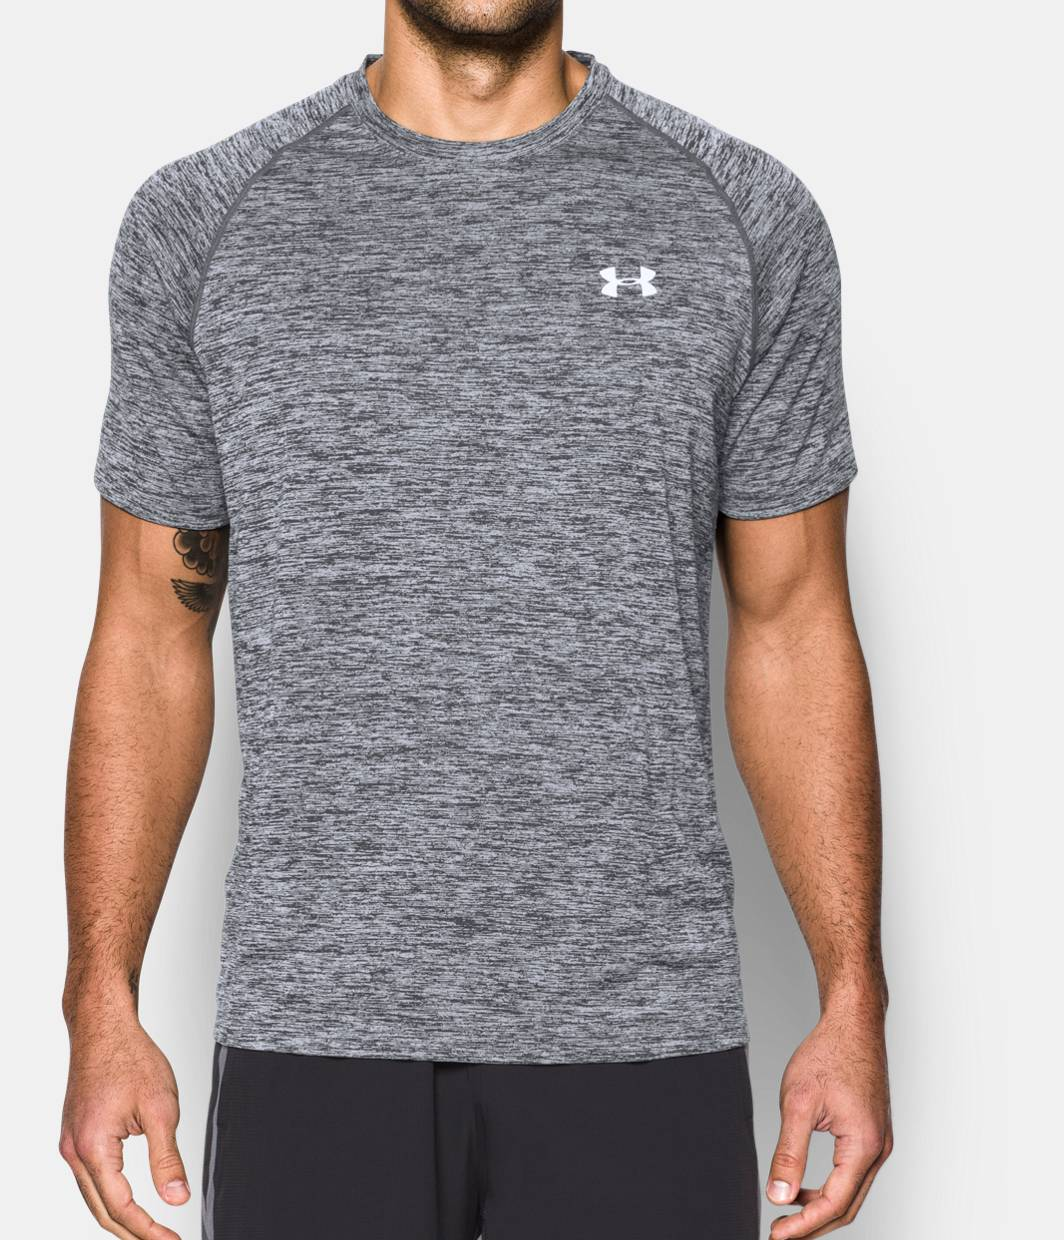 Aug 26,  · An Amazon brand - Great for layering or wearing alone, this smooth cotton T-shirt features a ribbed crewneck and short sleeves for everyday comfort. Goodthreads' collection of men's clothing crafted with care takes wear-everywhere apparel to the next level/5().